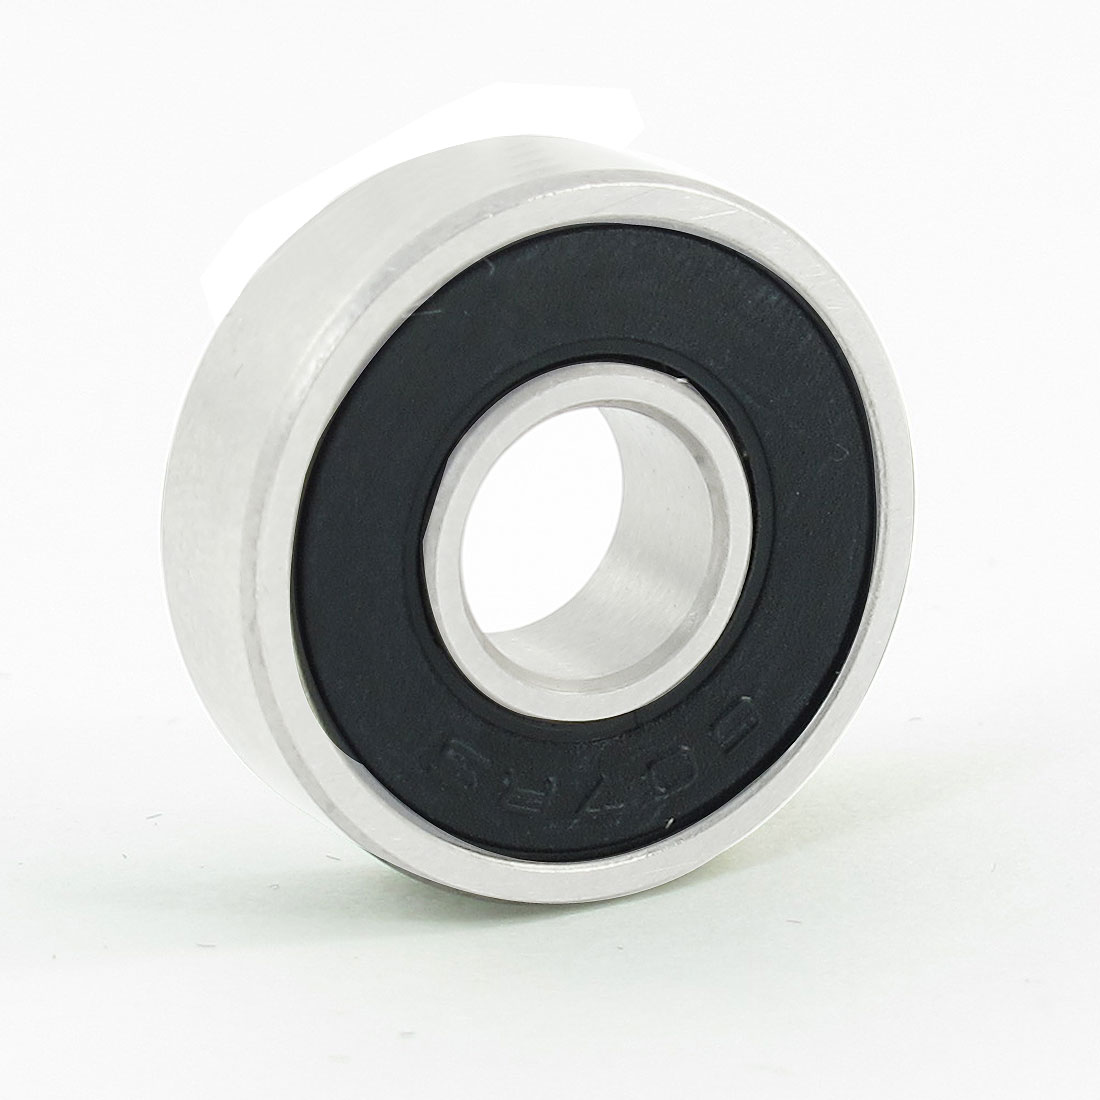 Replacement 607RS Roller-Skating Deep Groove Ball Bearing Black 19mm x 7mm x 6mm